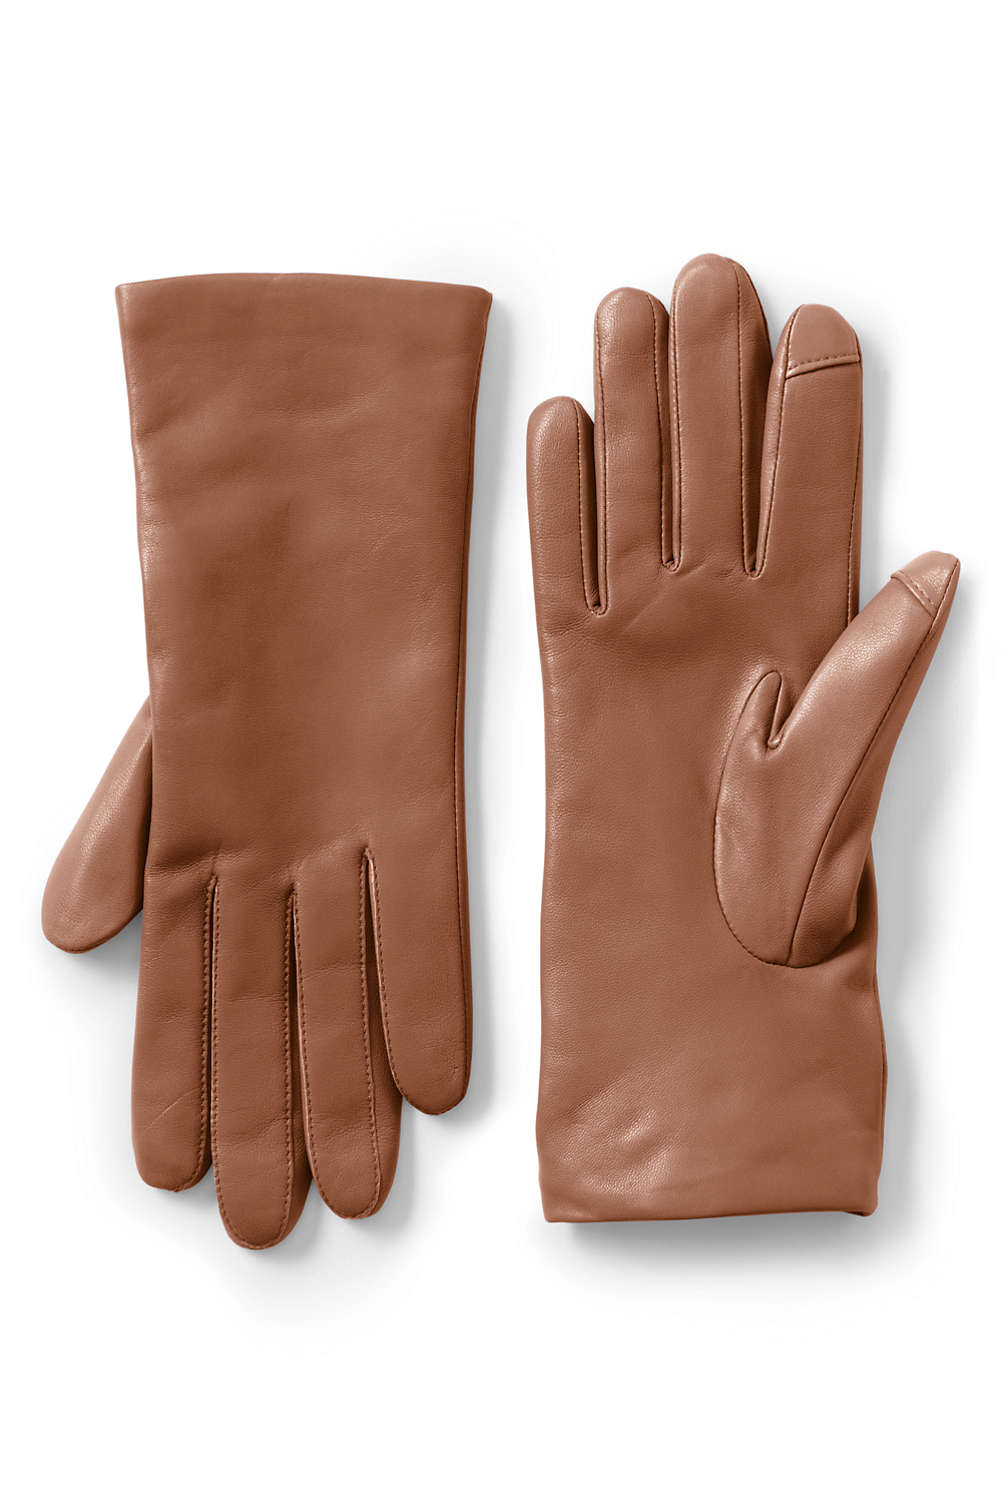 93a26b185cd4d Women's Cashmere Lined Leather Tech Gloves from Lands' End